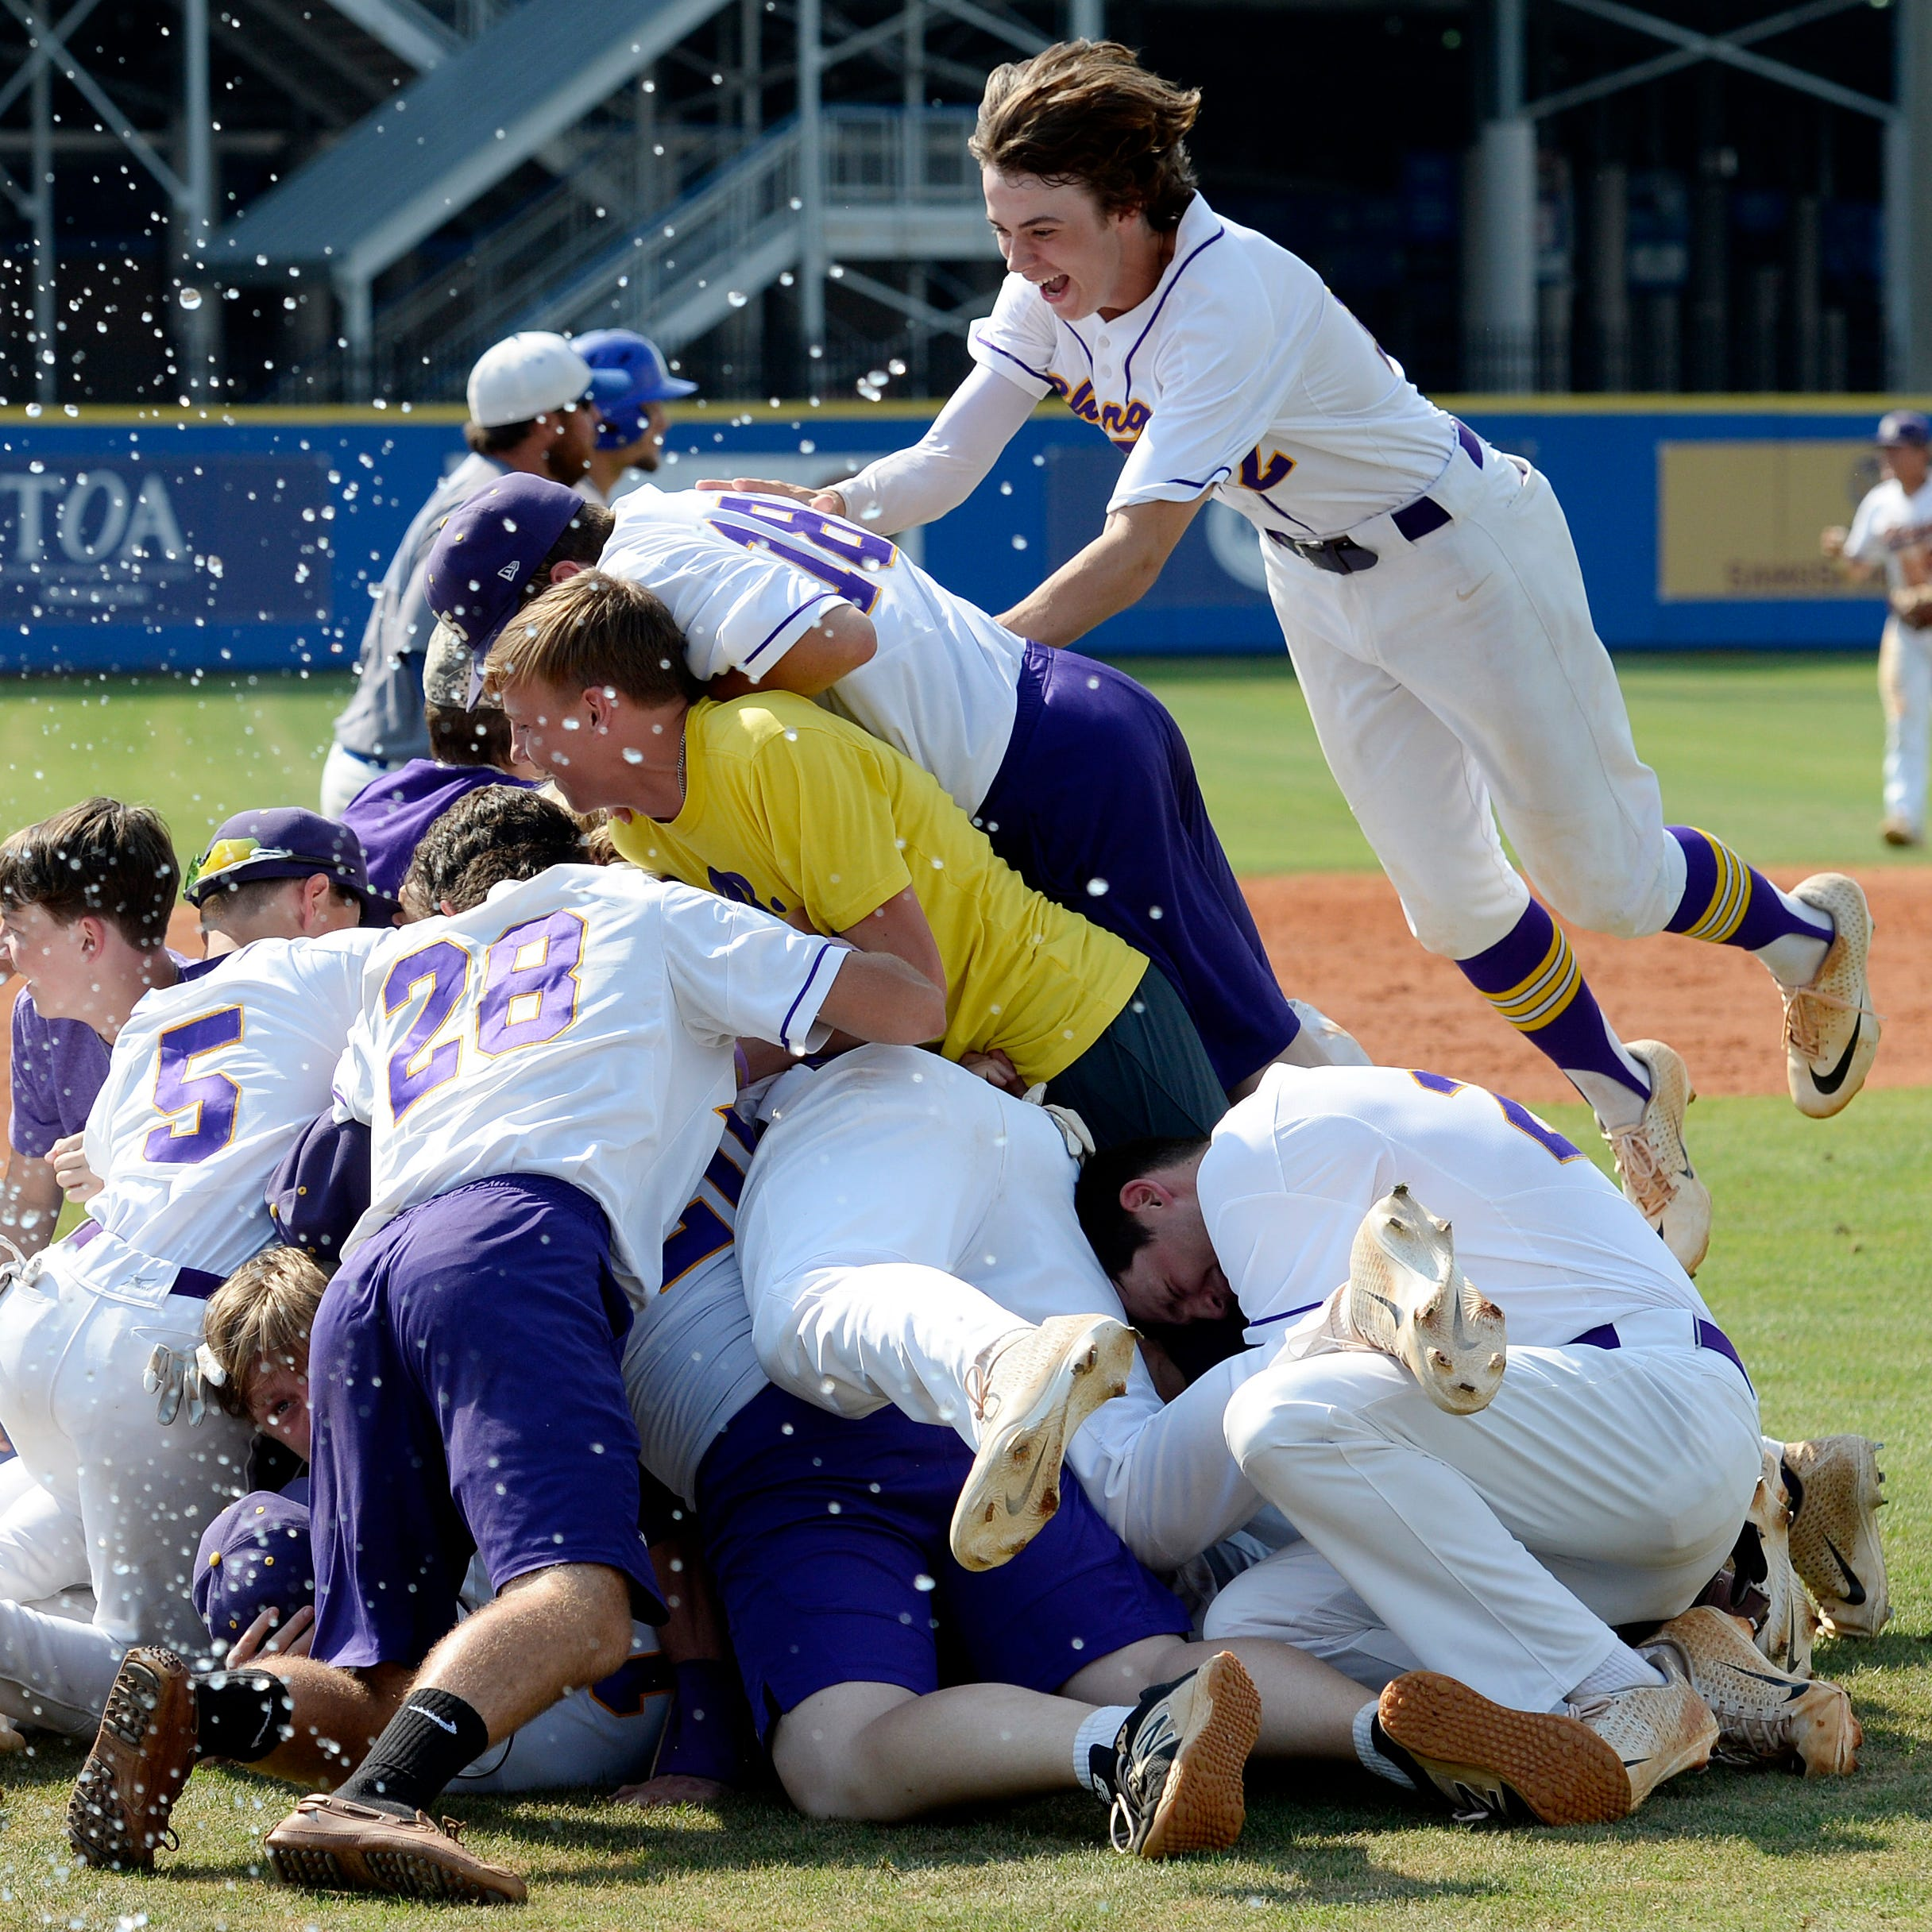 Covington baseball ends emotional season with state title win for coach Brad Warmath